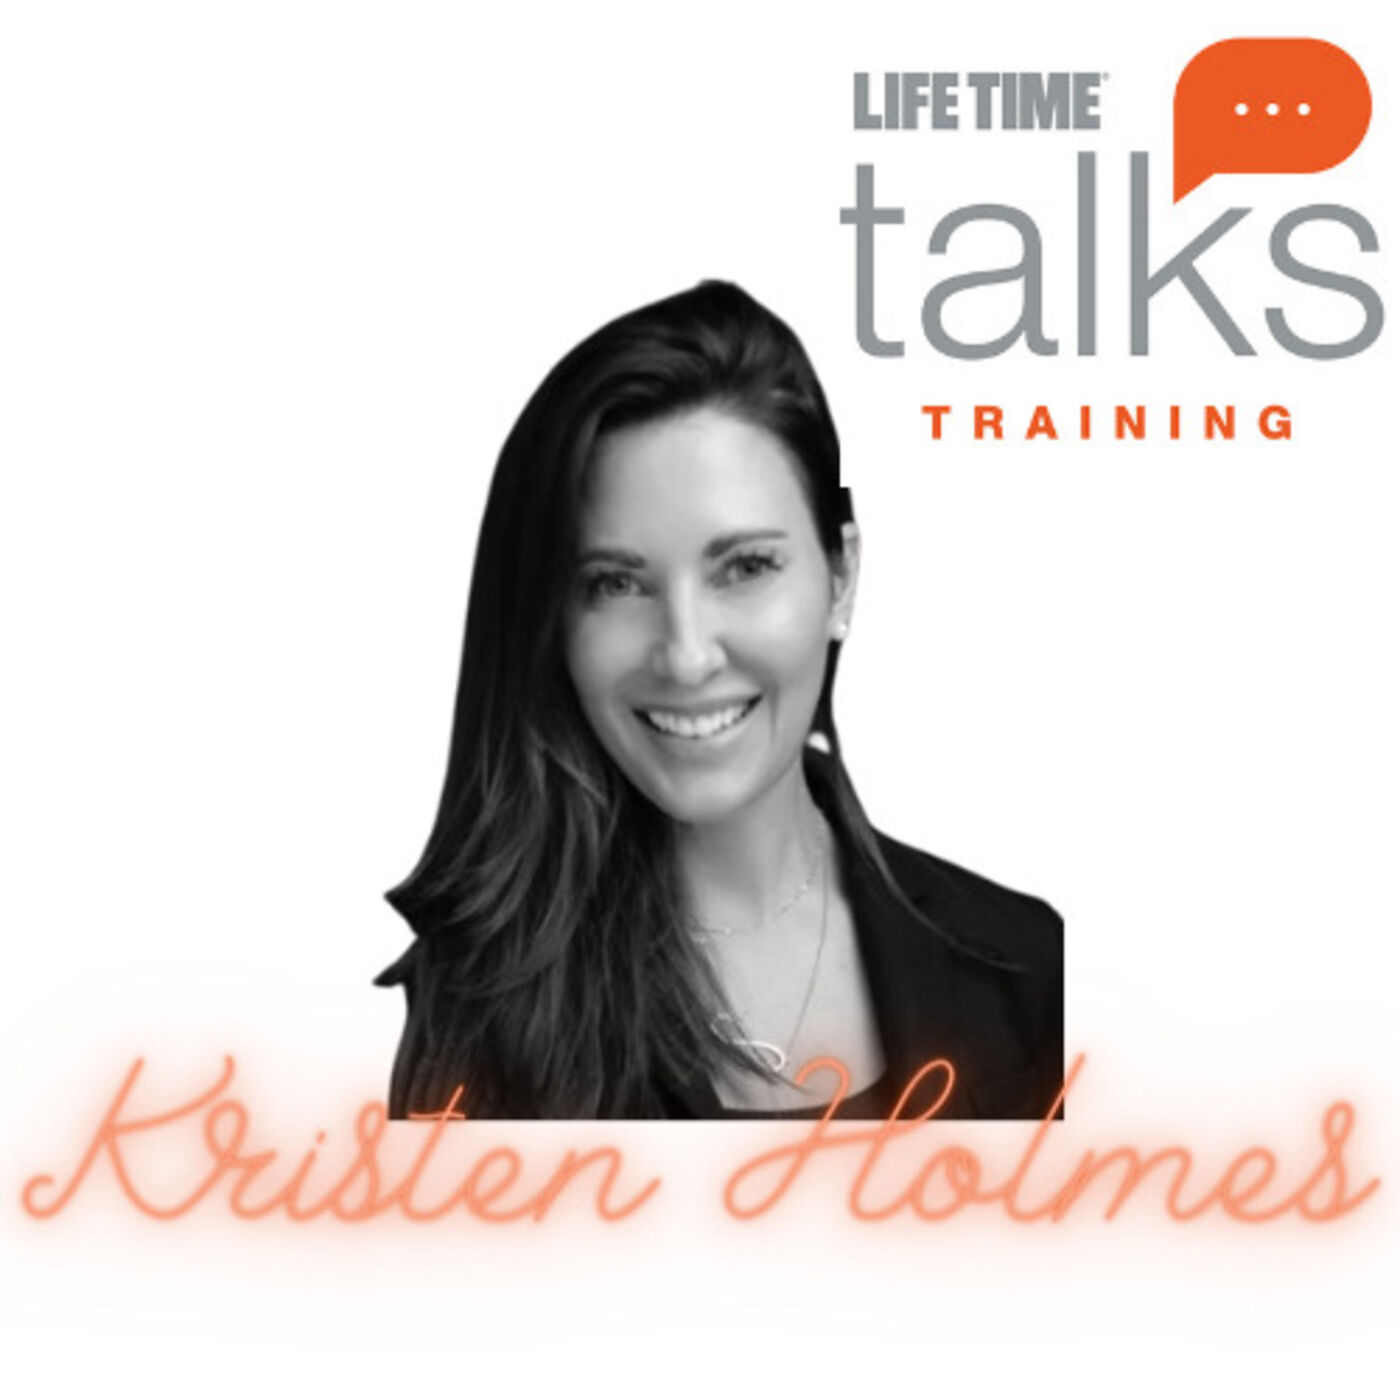 Episode #72 - Kristen Holmes - Tracking stress & recovery to achieve your Health & Fitness Goals